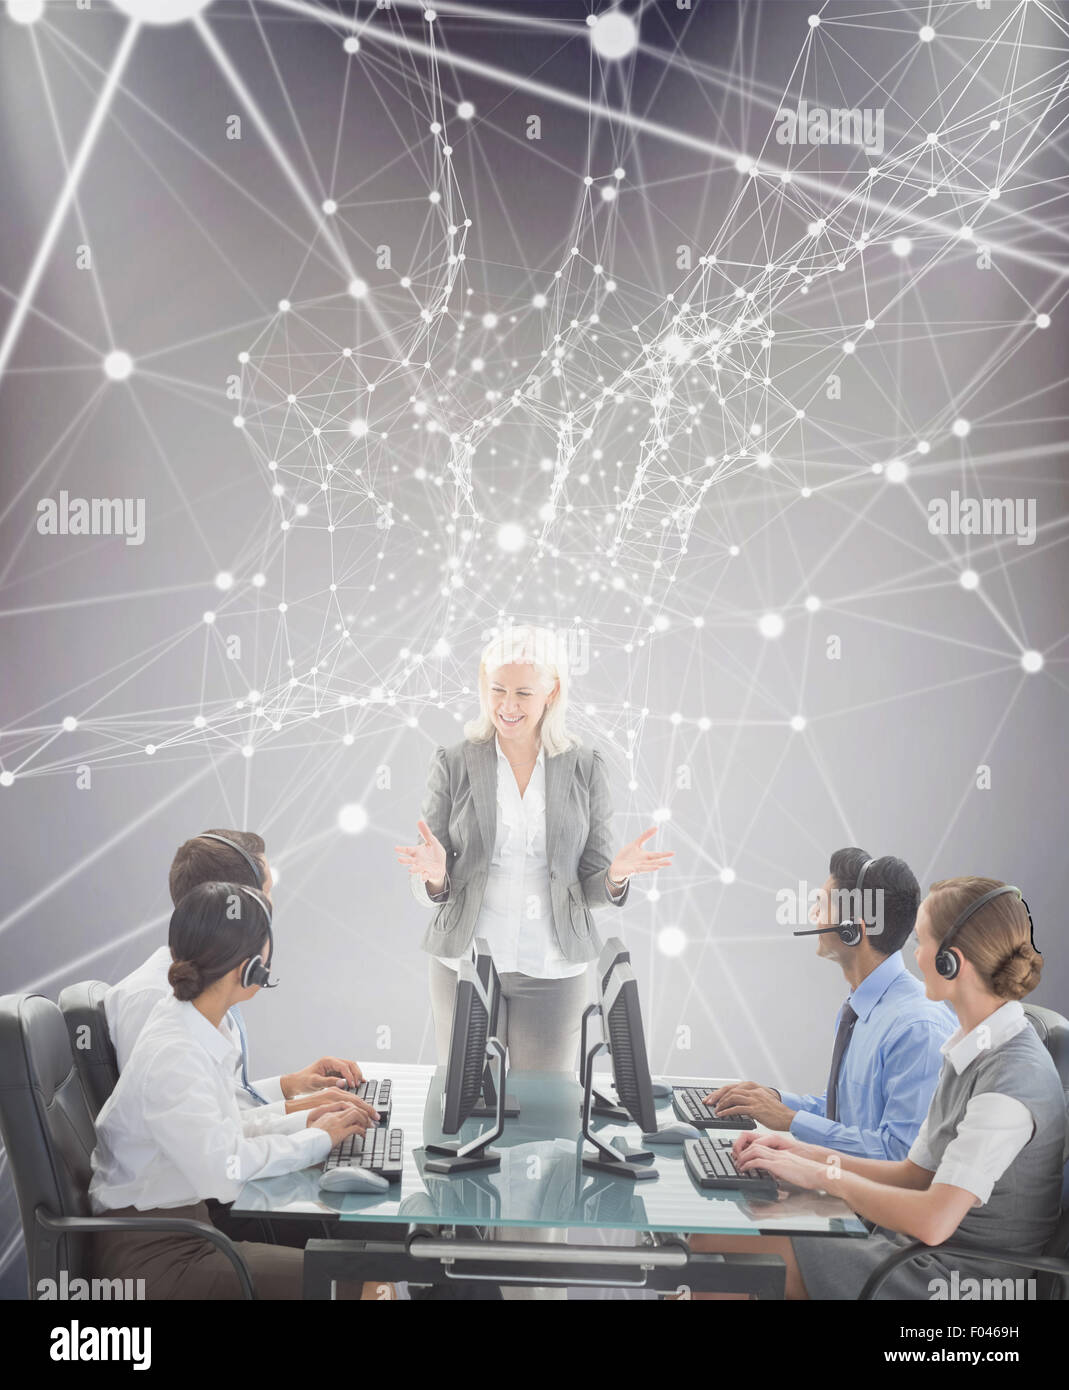 Composite image of smiling business people speaking together - Stock Image